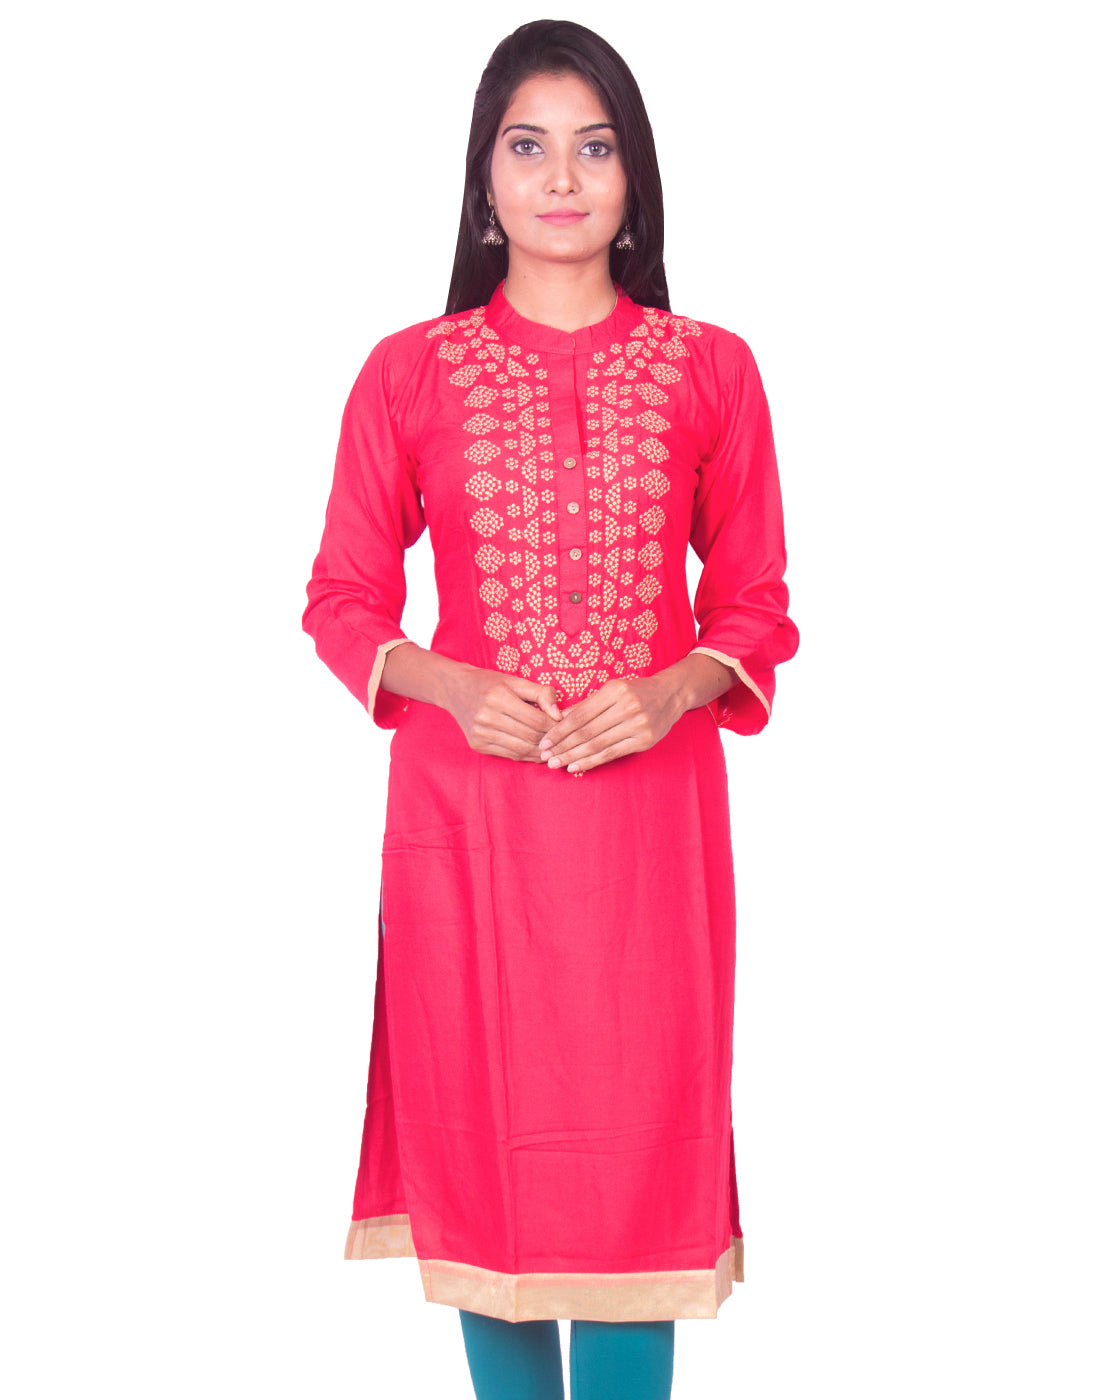 Joshuah's Amaranth Red Pure Rayon Straight Cut Long Sleeves Kurtiget best offers deals free online at buythevalue.in